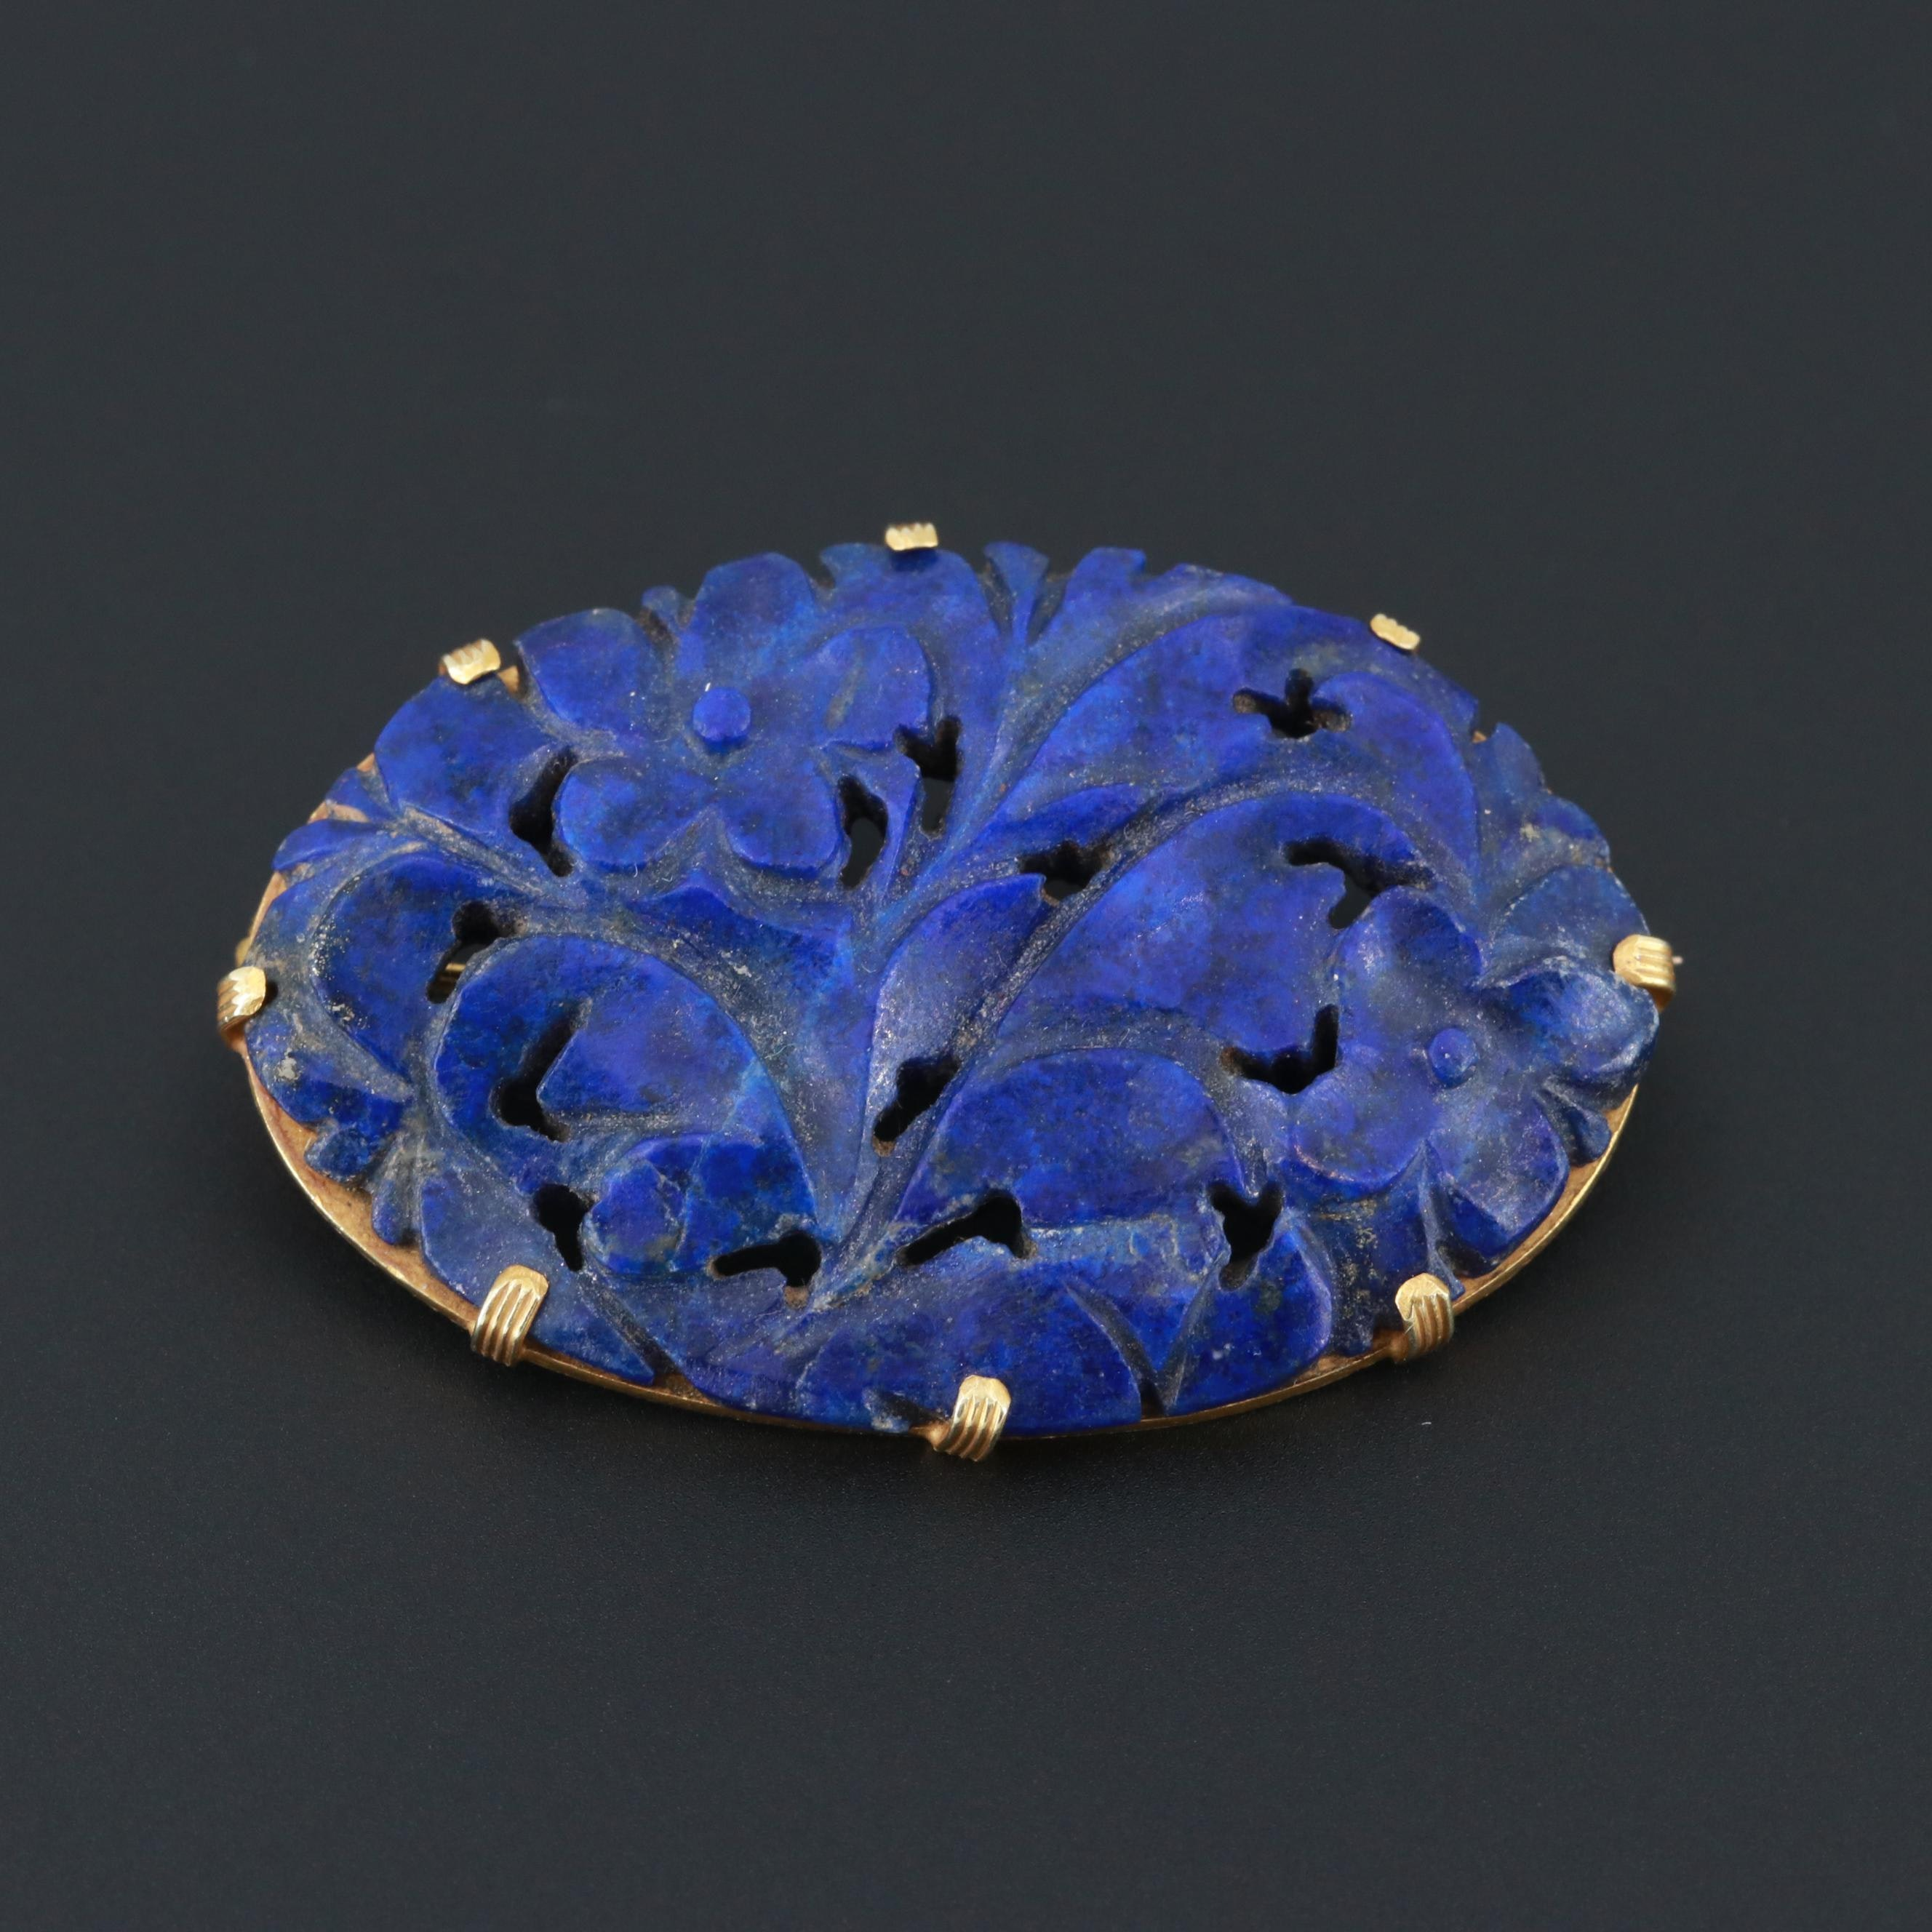 14K Yellow Gold Lapis Lazuli Carved Floral Brooch